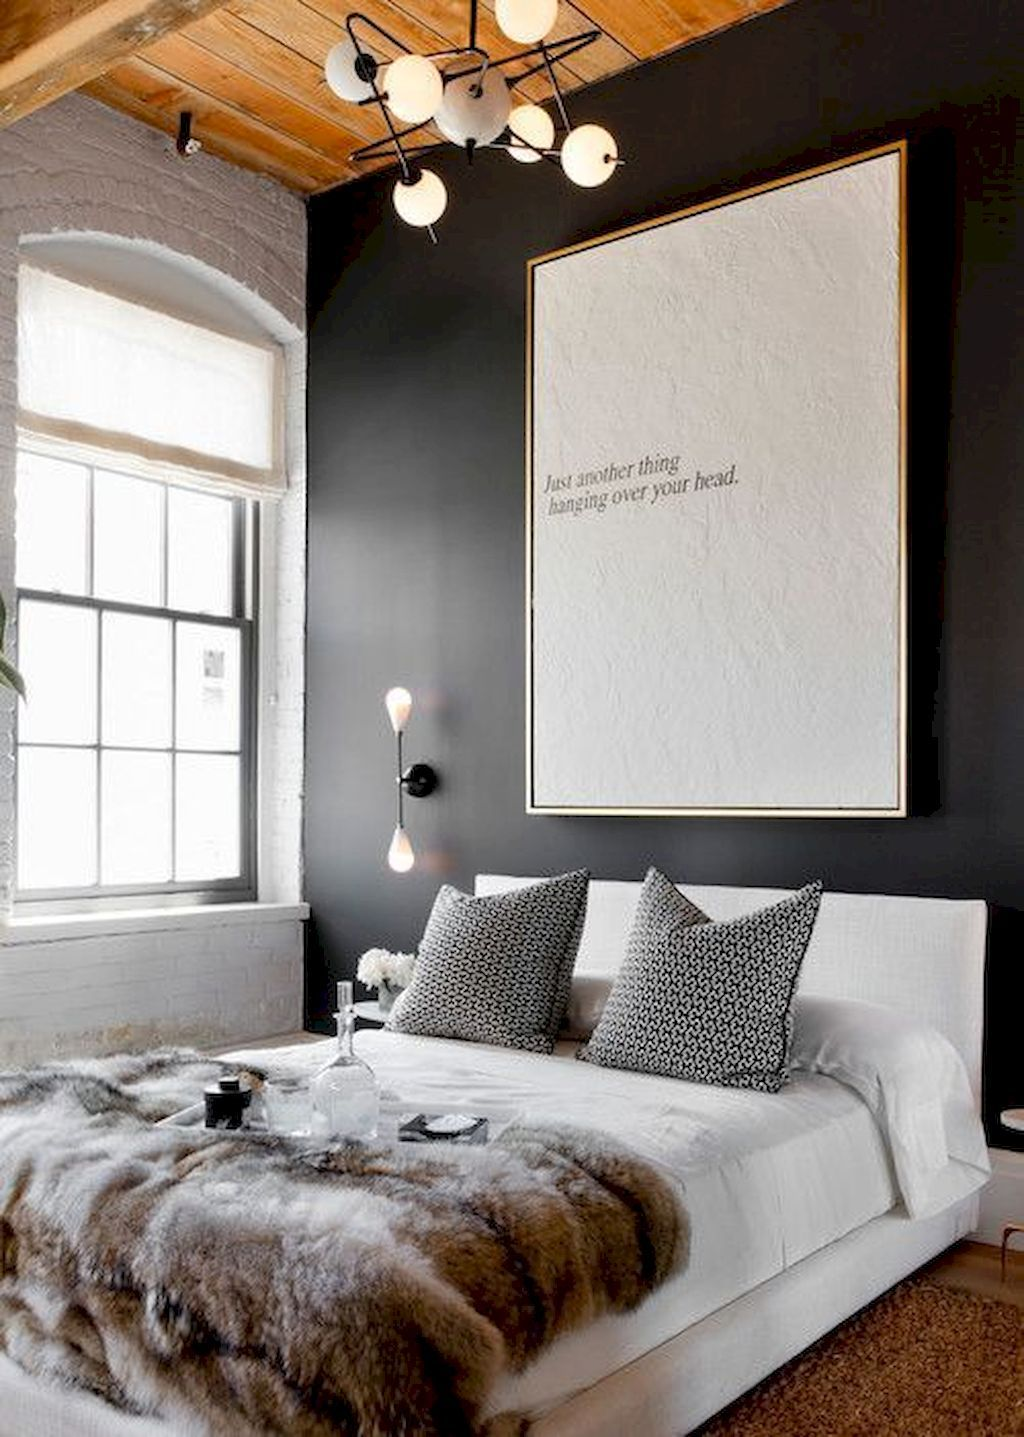 Superb 60 Cozy And Stylish Scandinavian Bedroom Decor Ideas   HomStuff.com